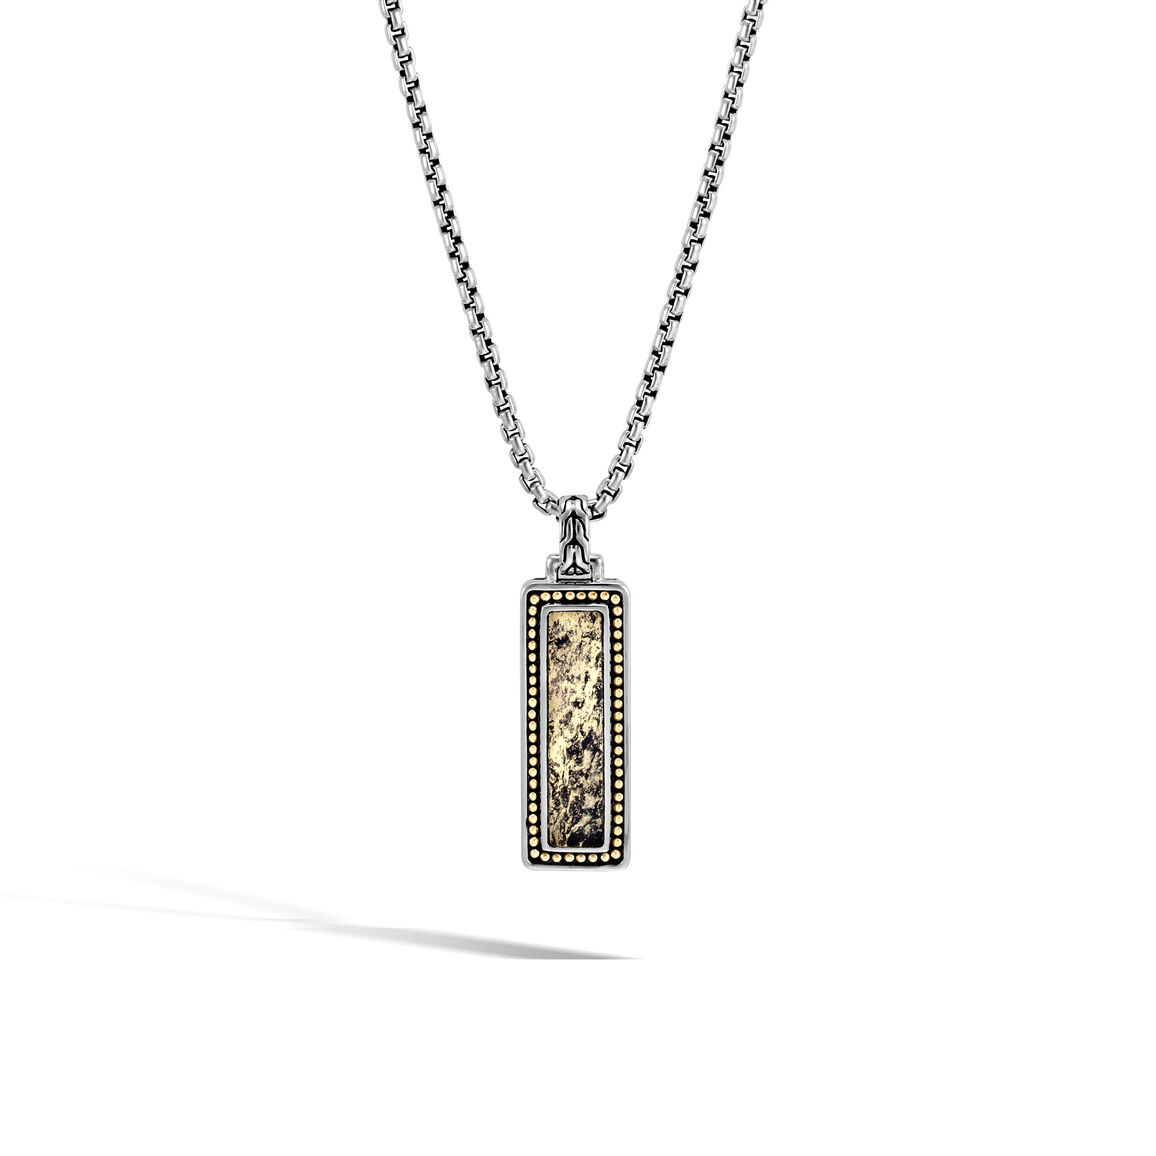 Chain Jawan Dog Tag Pendant in Silver and 18K Gold, Gemstone